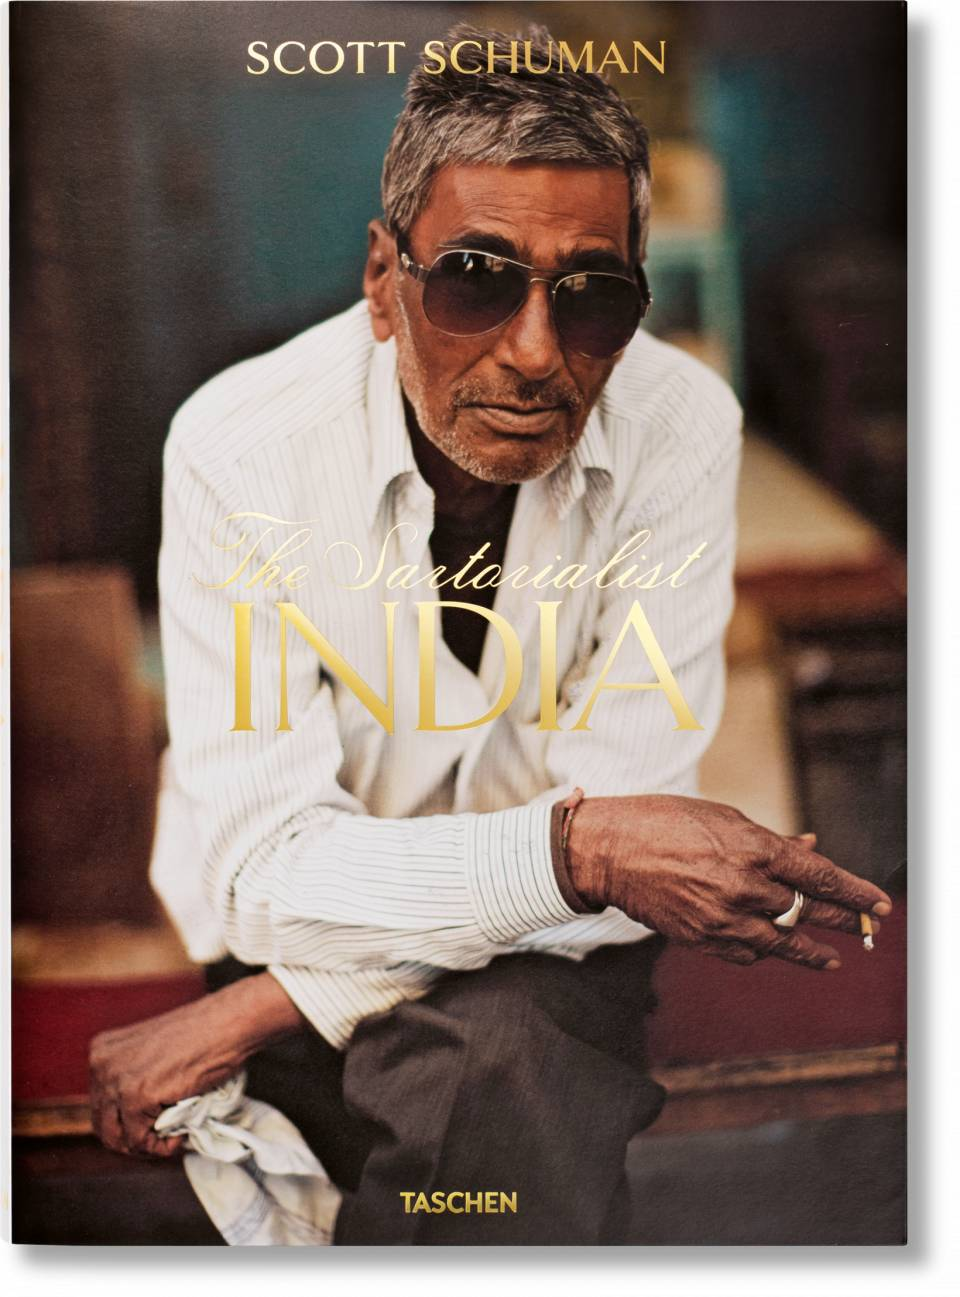 The Sartorialist. India - image 1